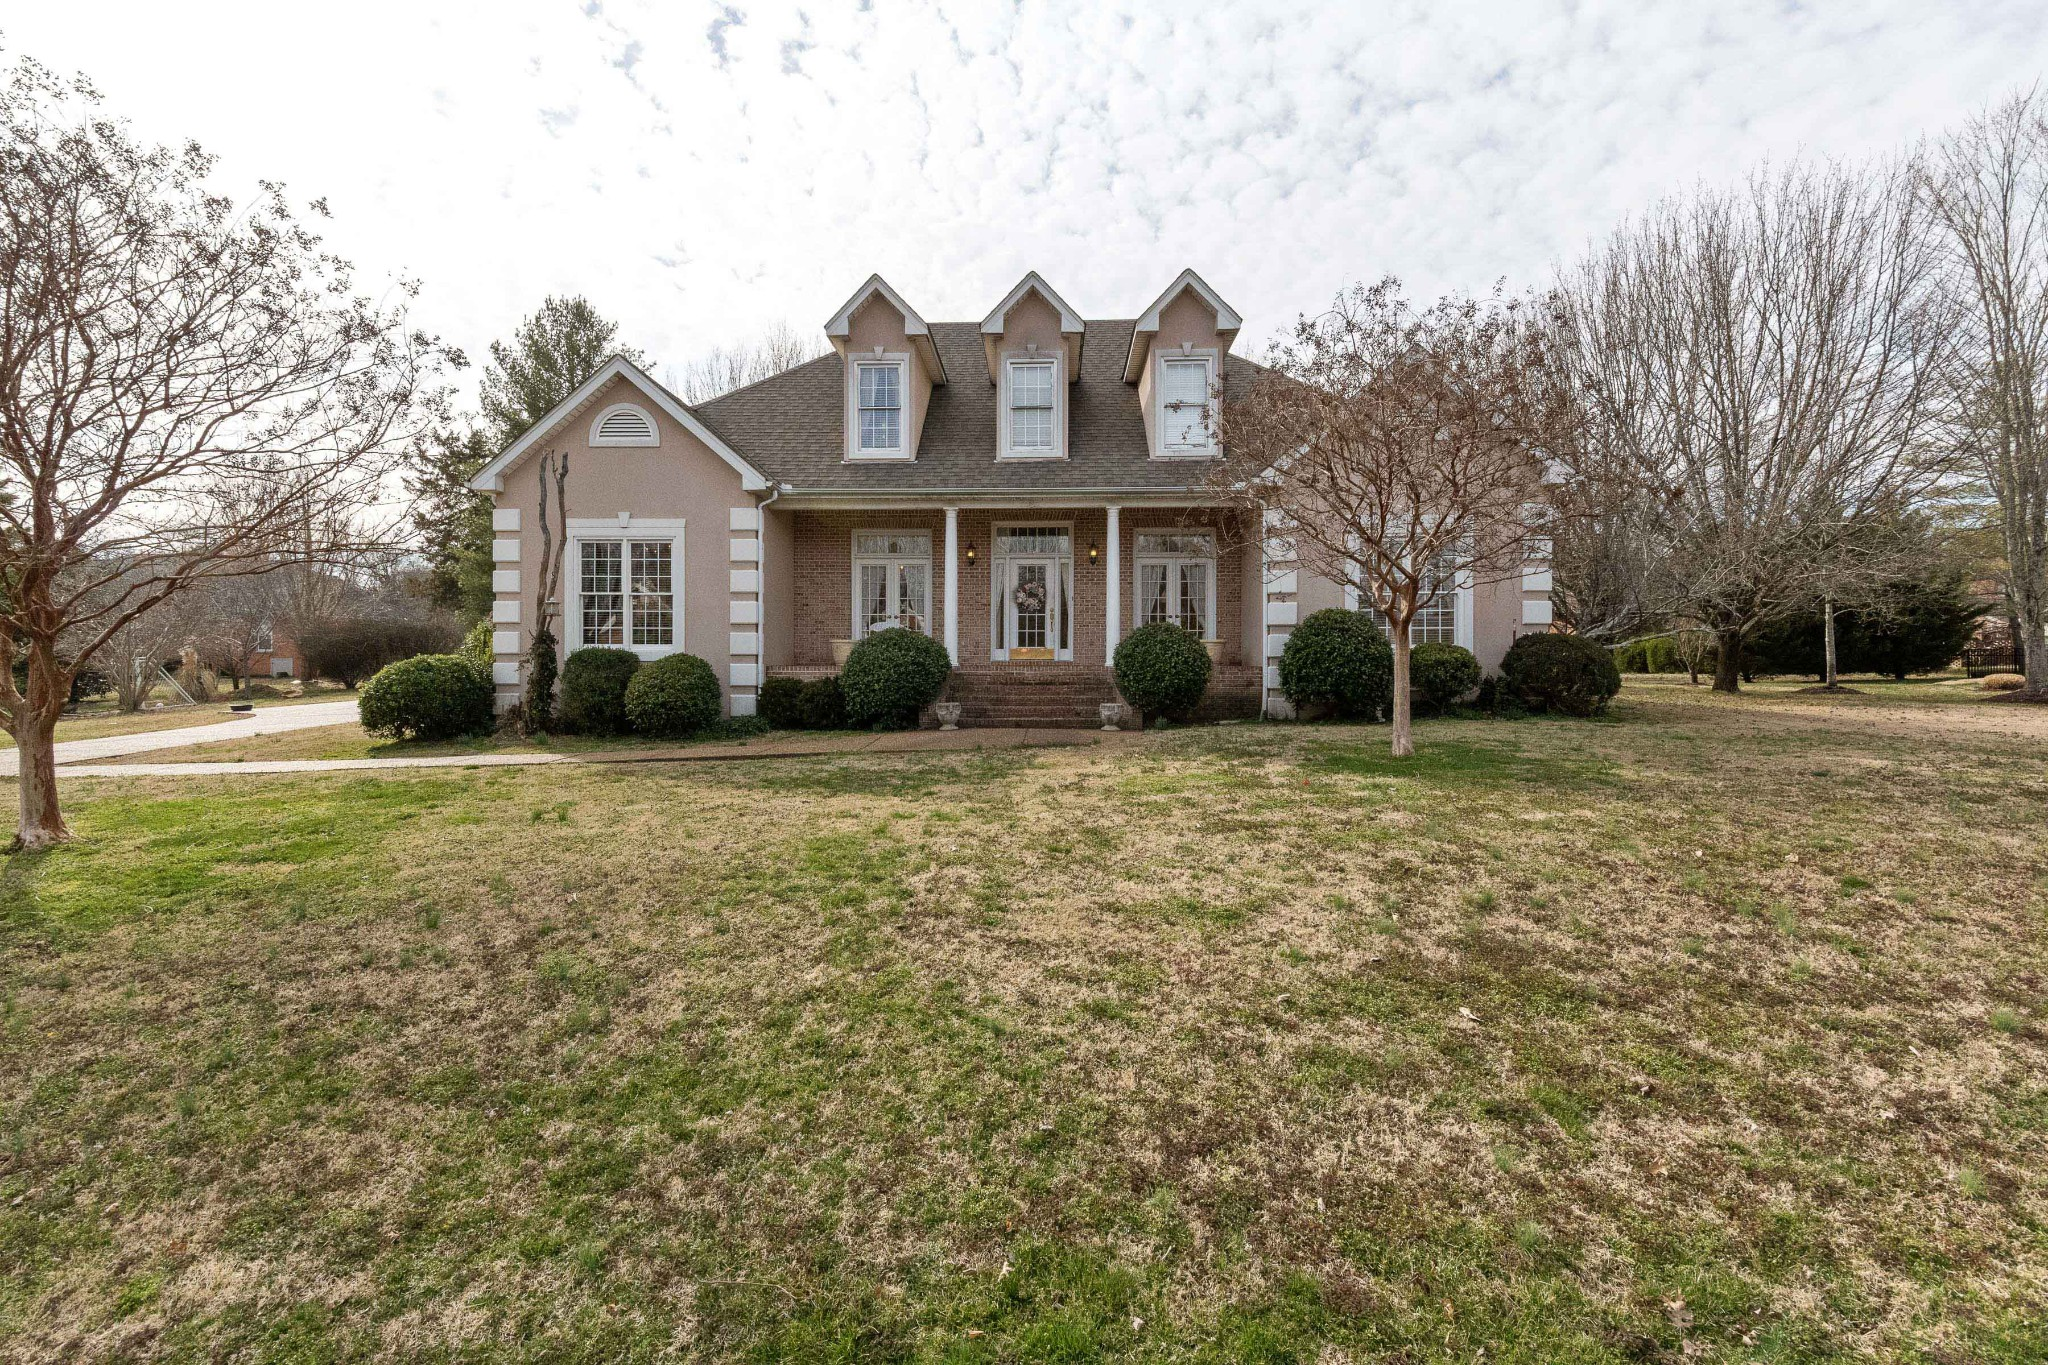 108 Geers Dr Property Photo - Lebanon, TN real estate listing